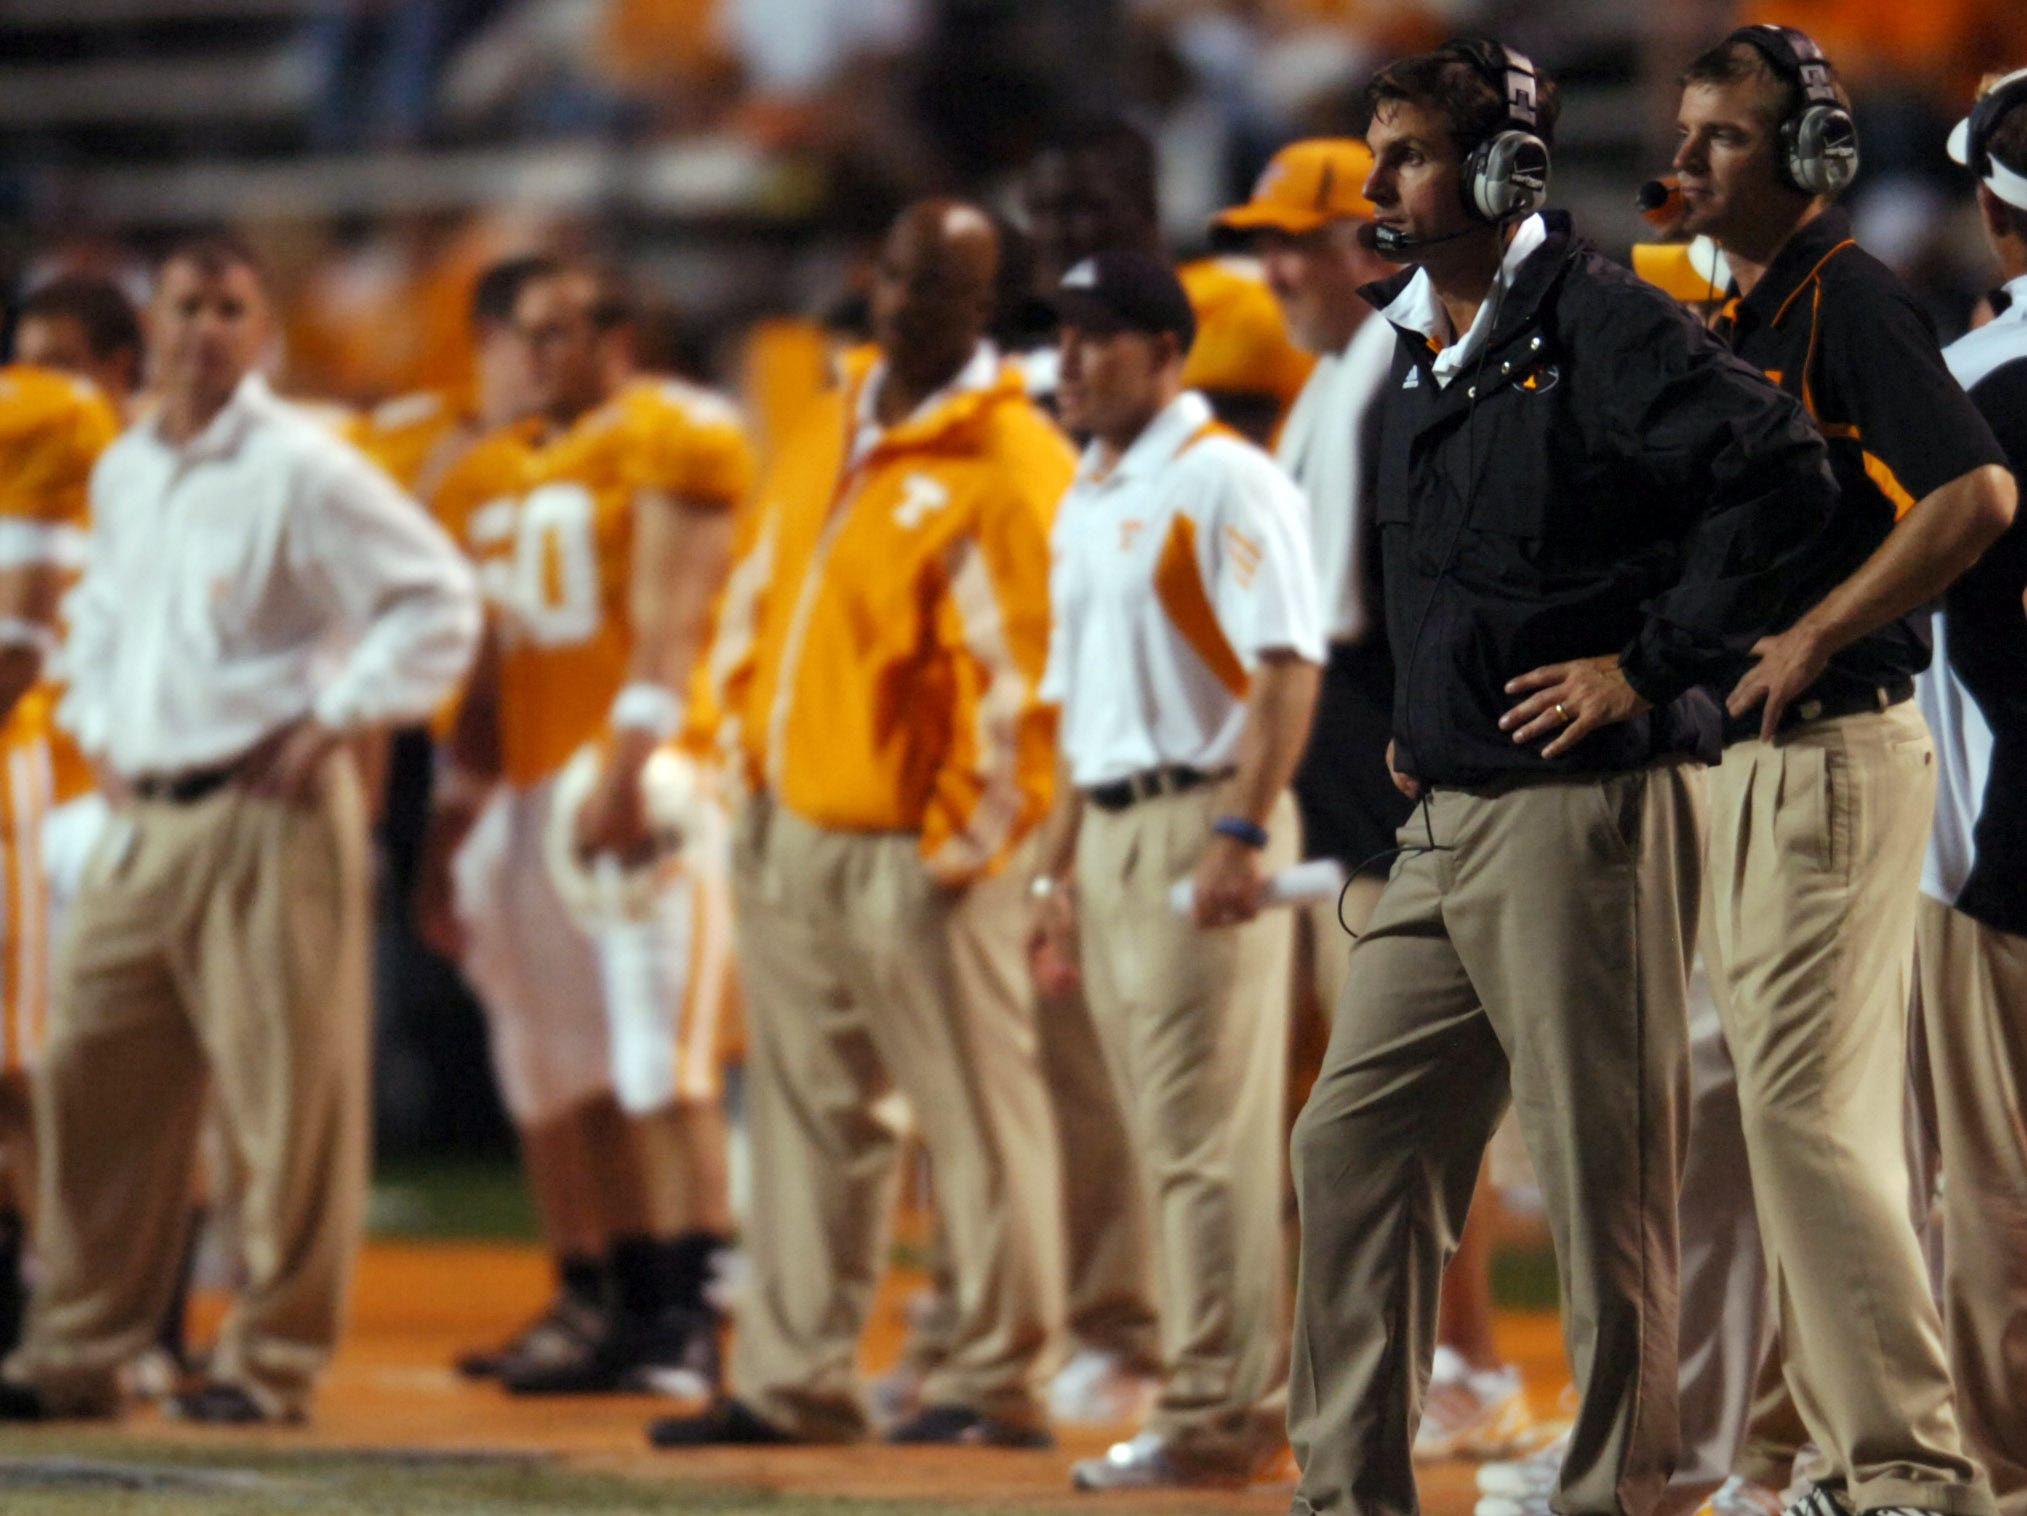 Tennessee head coach Derek Dooley looks on as the team falls behind to Oregon at Neyland Stadium on Saturday, Sept. 11, 2010. UT lost the game 48-13.